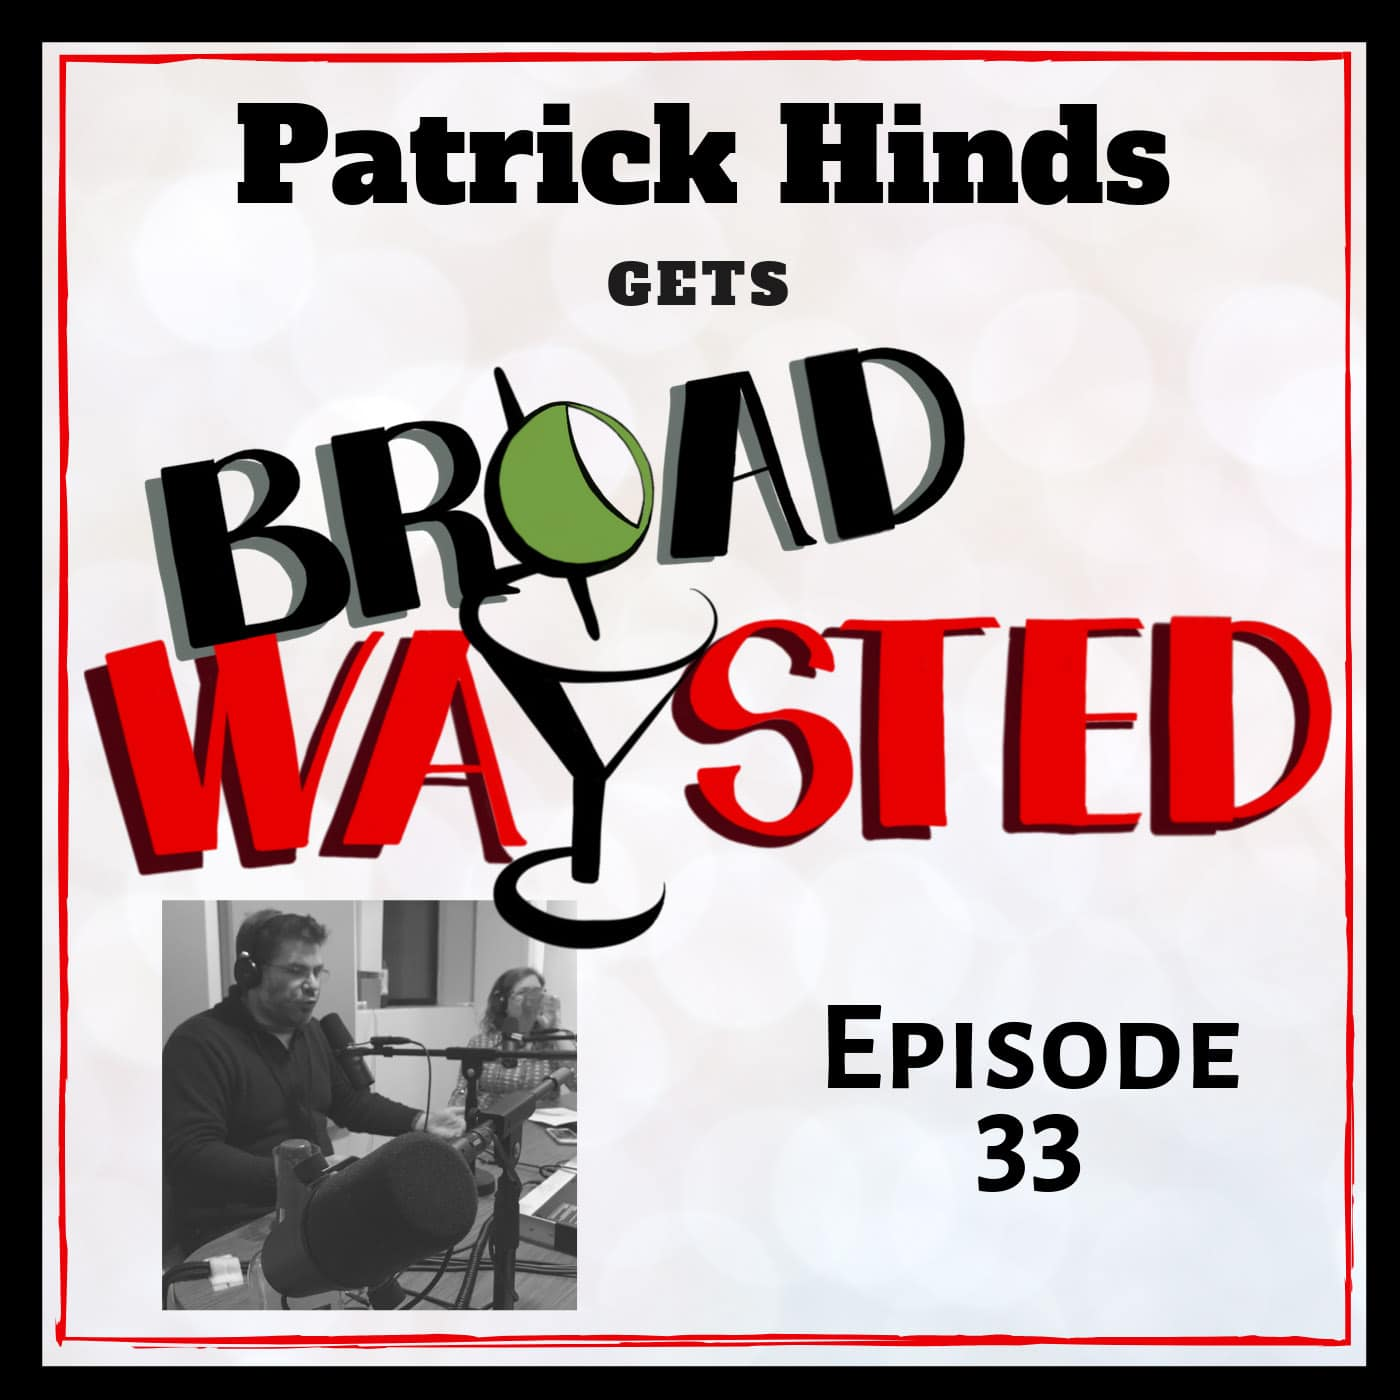 Broadwaysted Ep 33 Patrick Hinds